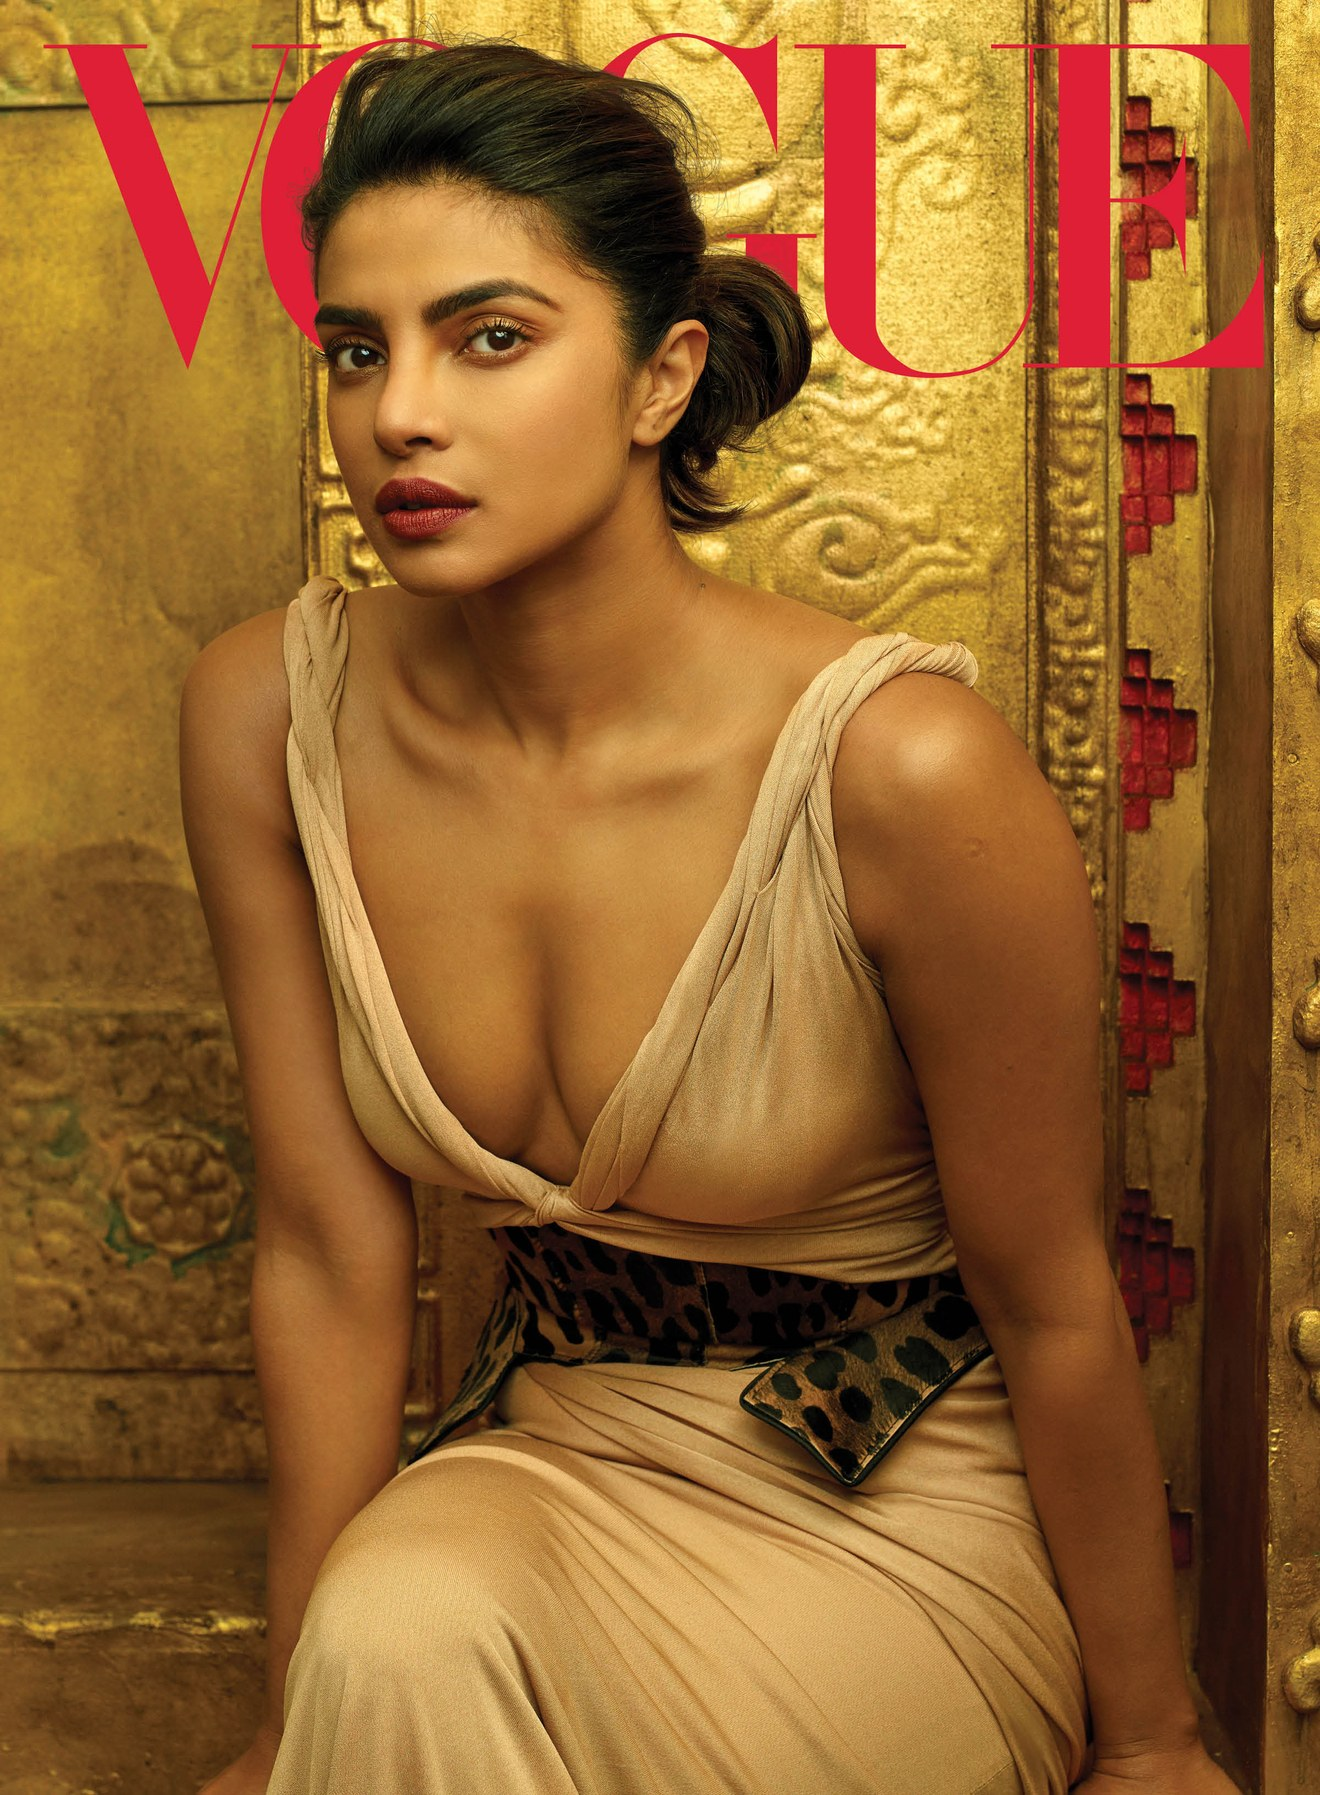 08-priyanka-chopra-nick-jonas-vogue-cover-story